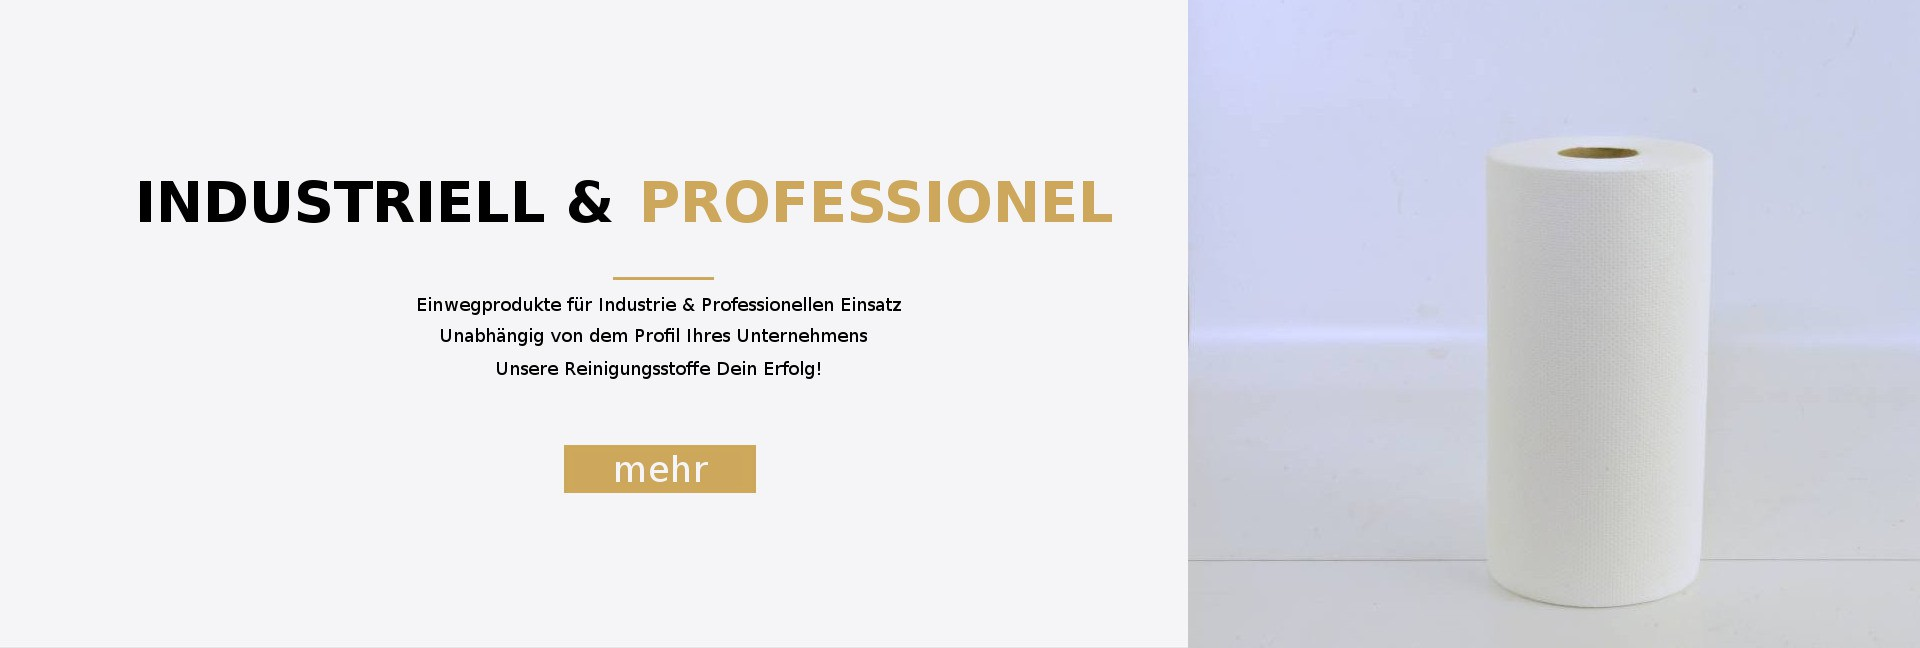 Industriell & Professionel